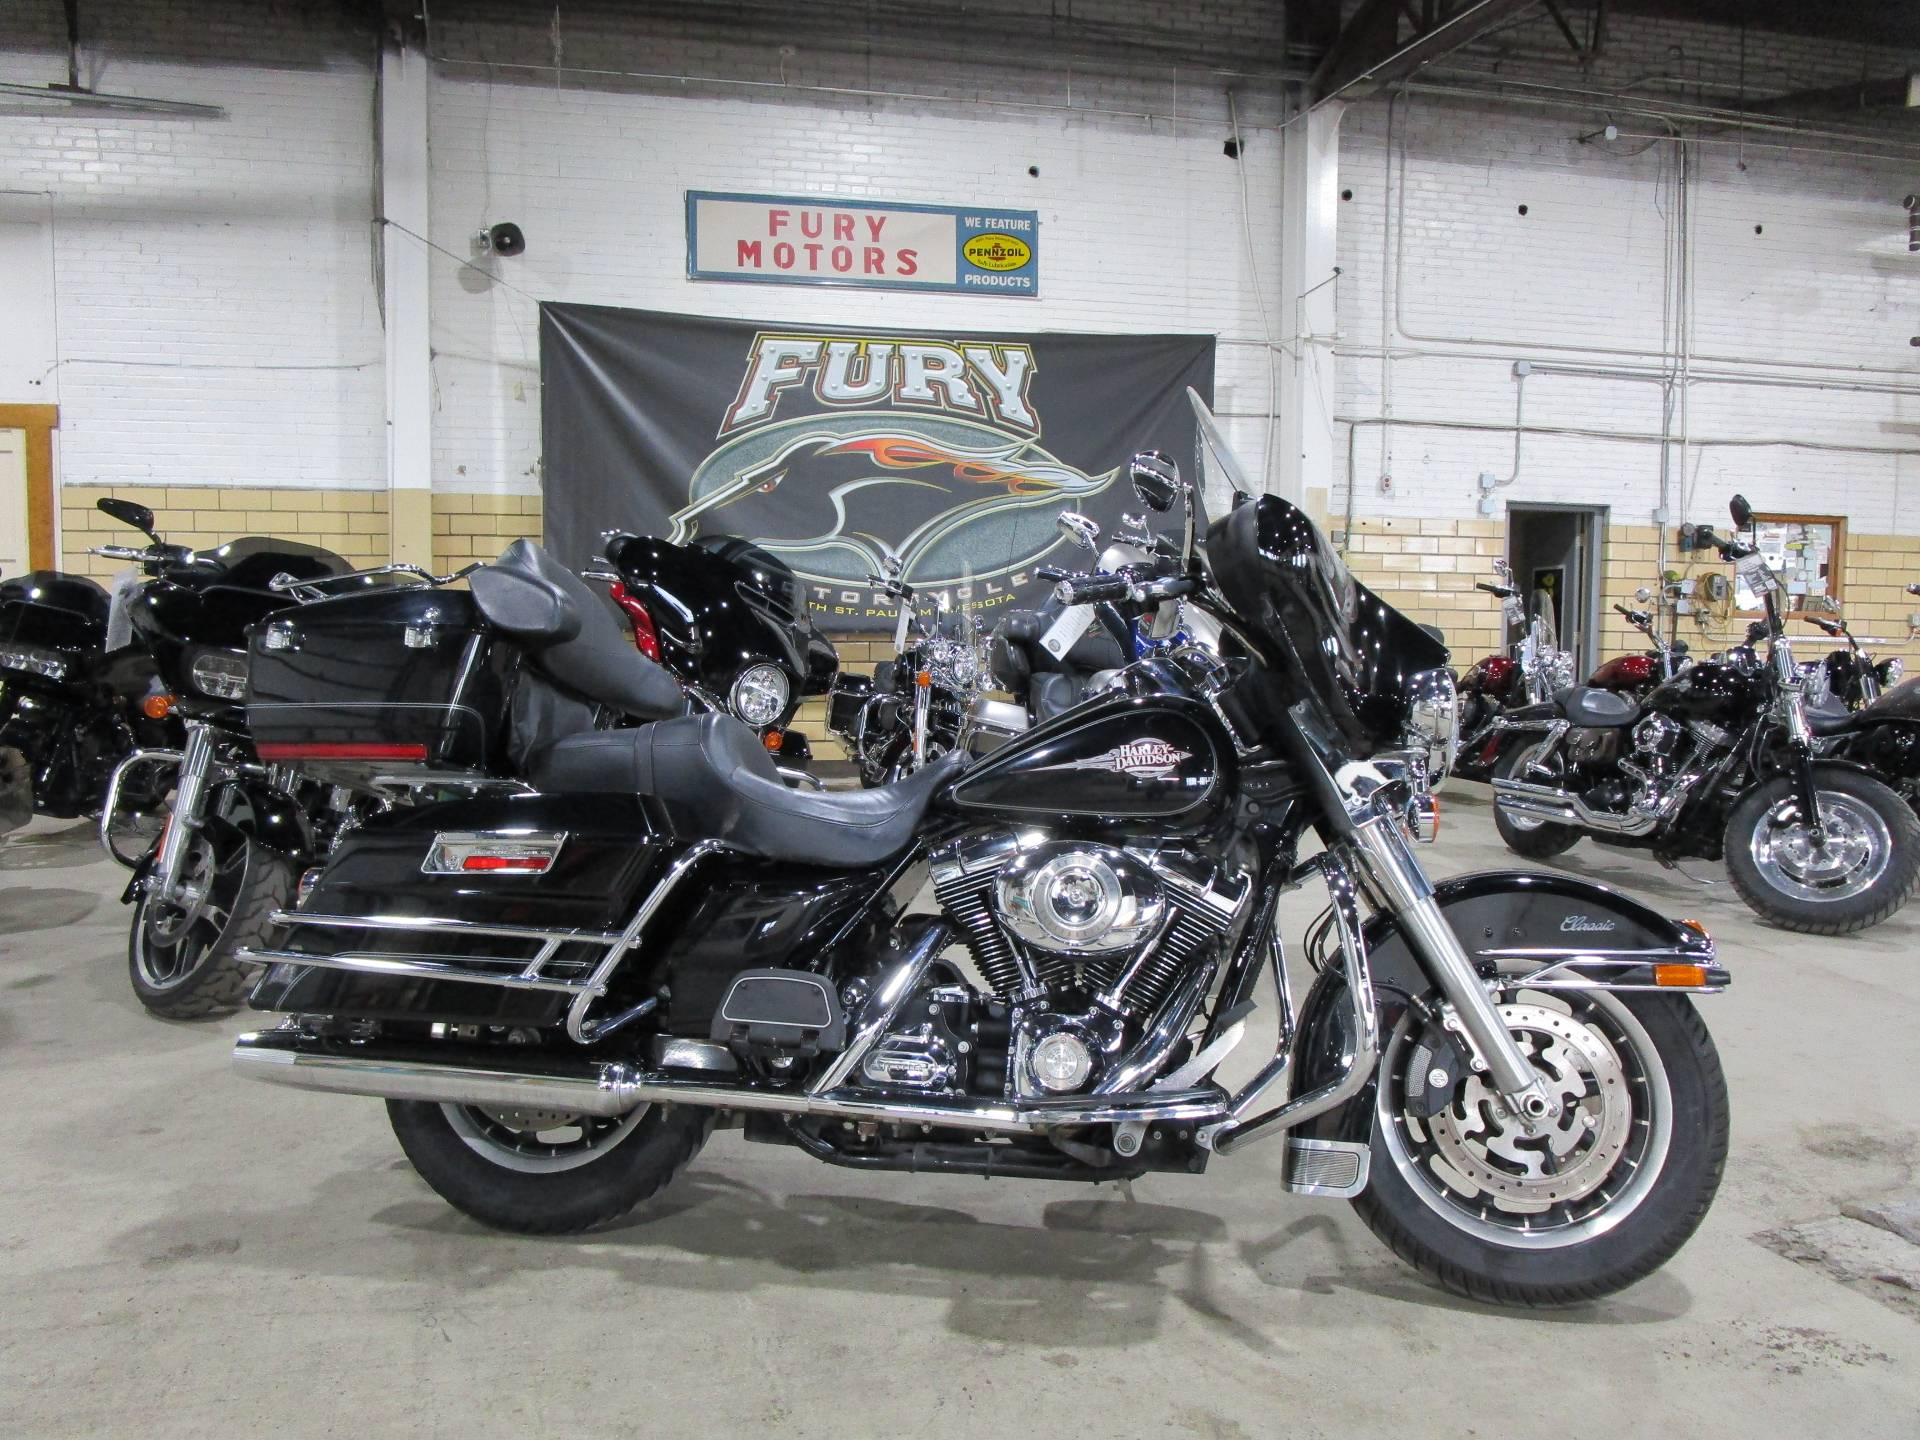 2008 Harley-Davidson FLHTC ELECTRA GLIDE CLASSIC in South Saint Paul, Minnesota - Photo 1